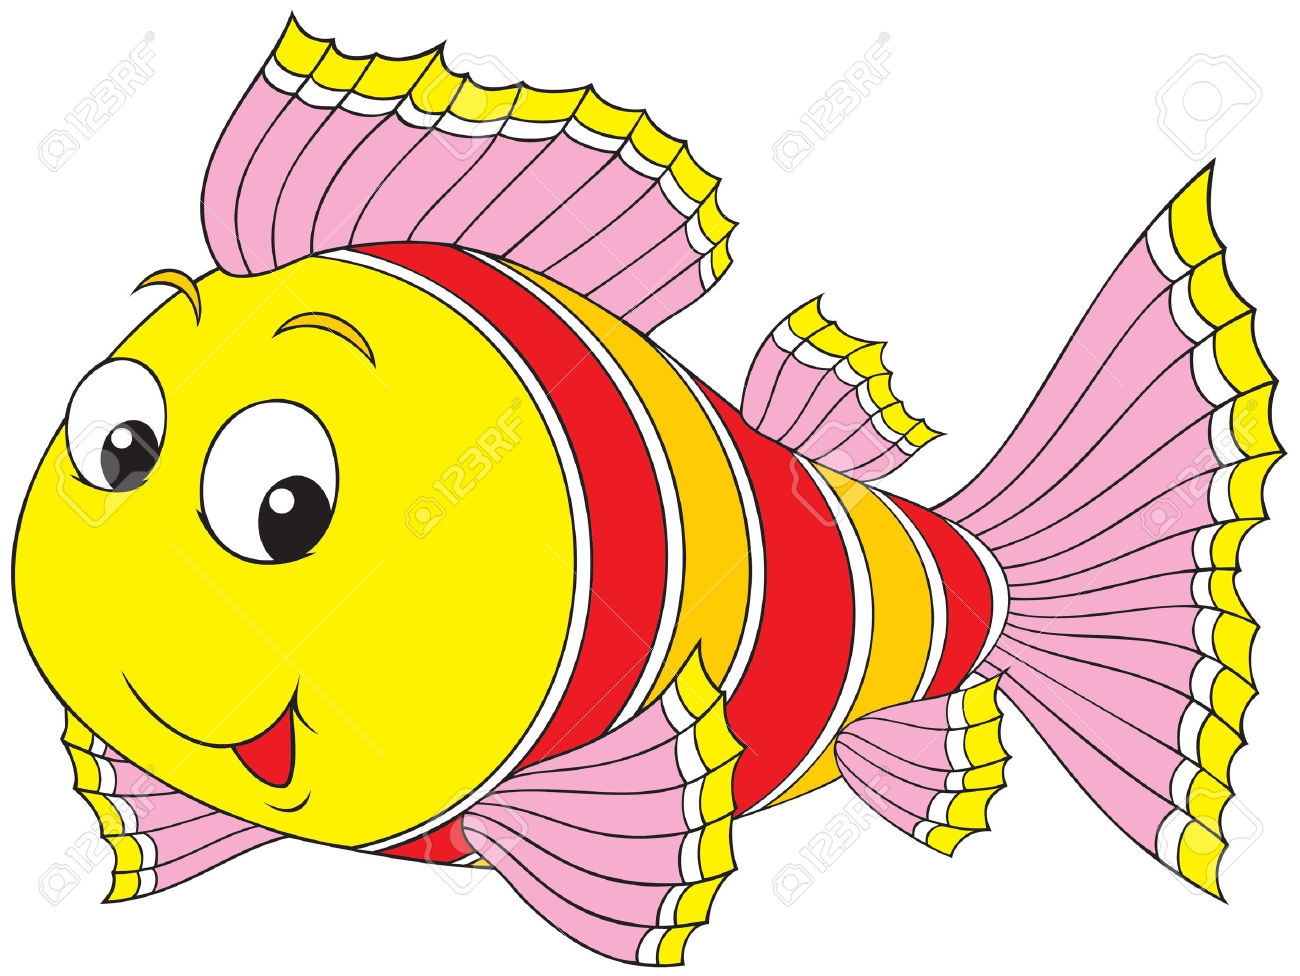 koi fish coloring page - free clipart